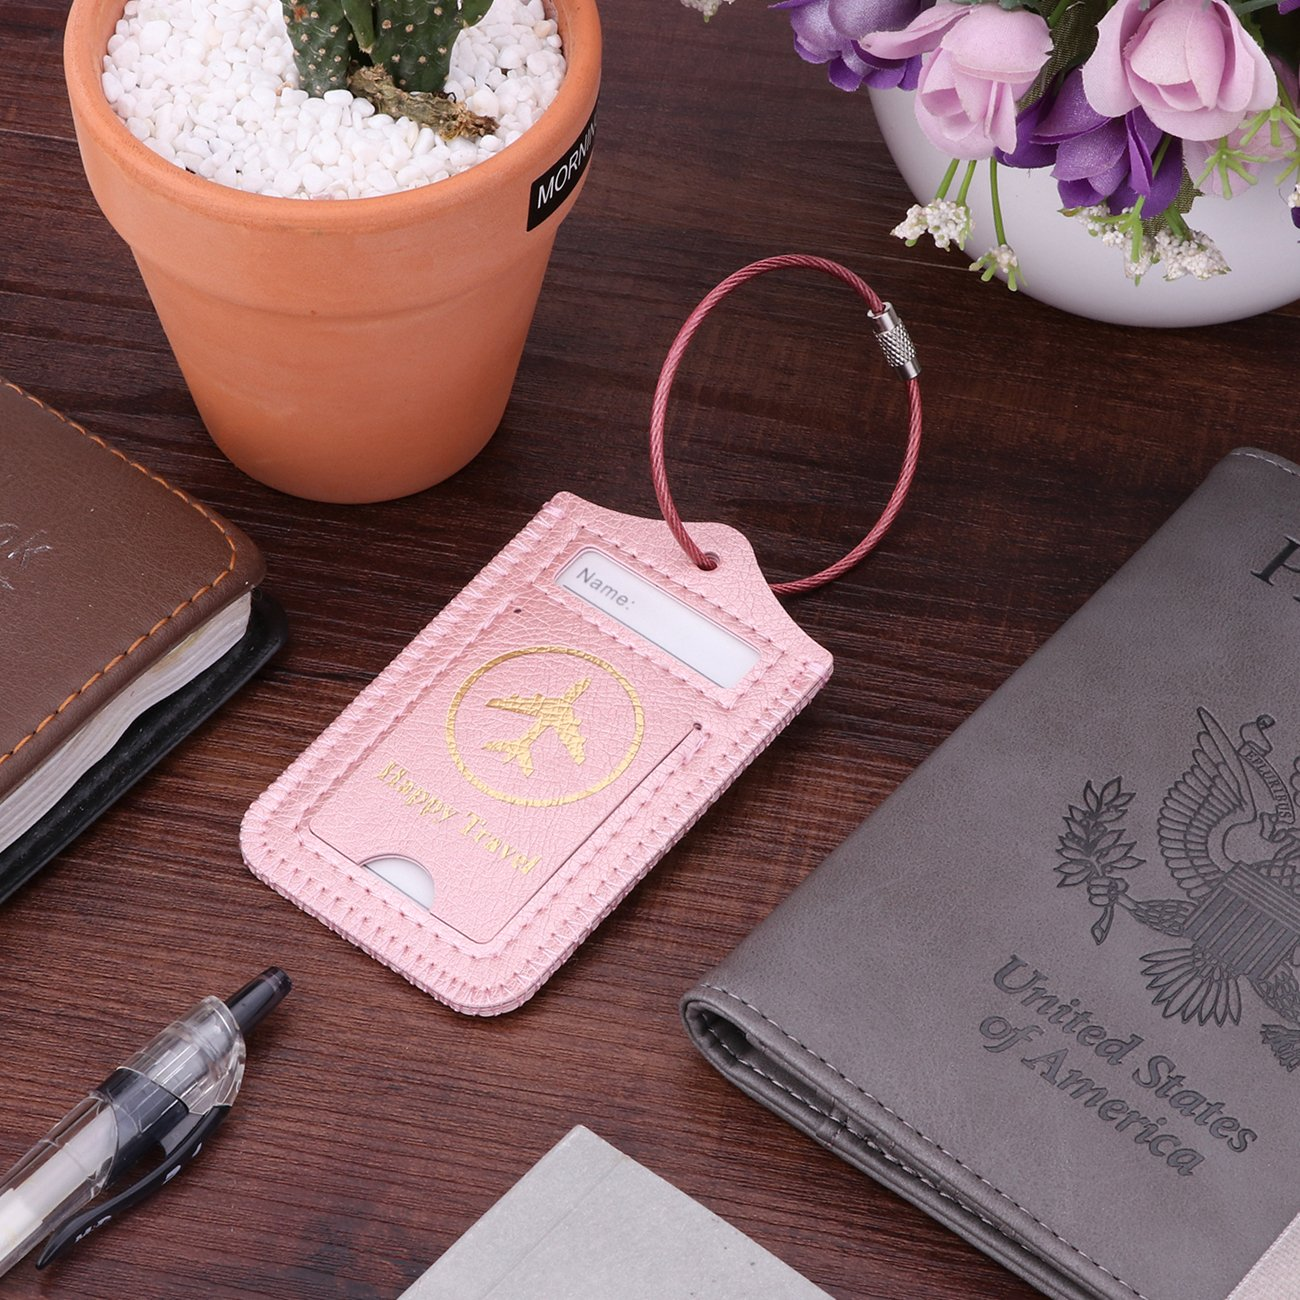 Set of 2 Tags, Pink Flowers WALNEW Travel Luggage Tags Suitcase Label Baggage Case Handbag Tags with Stainless Steel Ring Lock